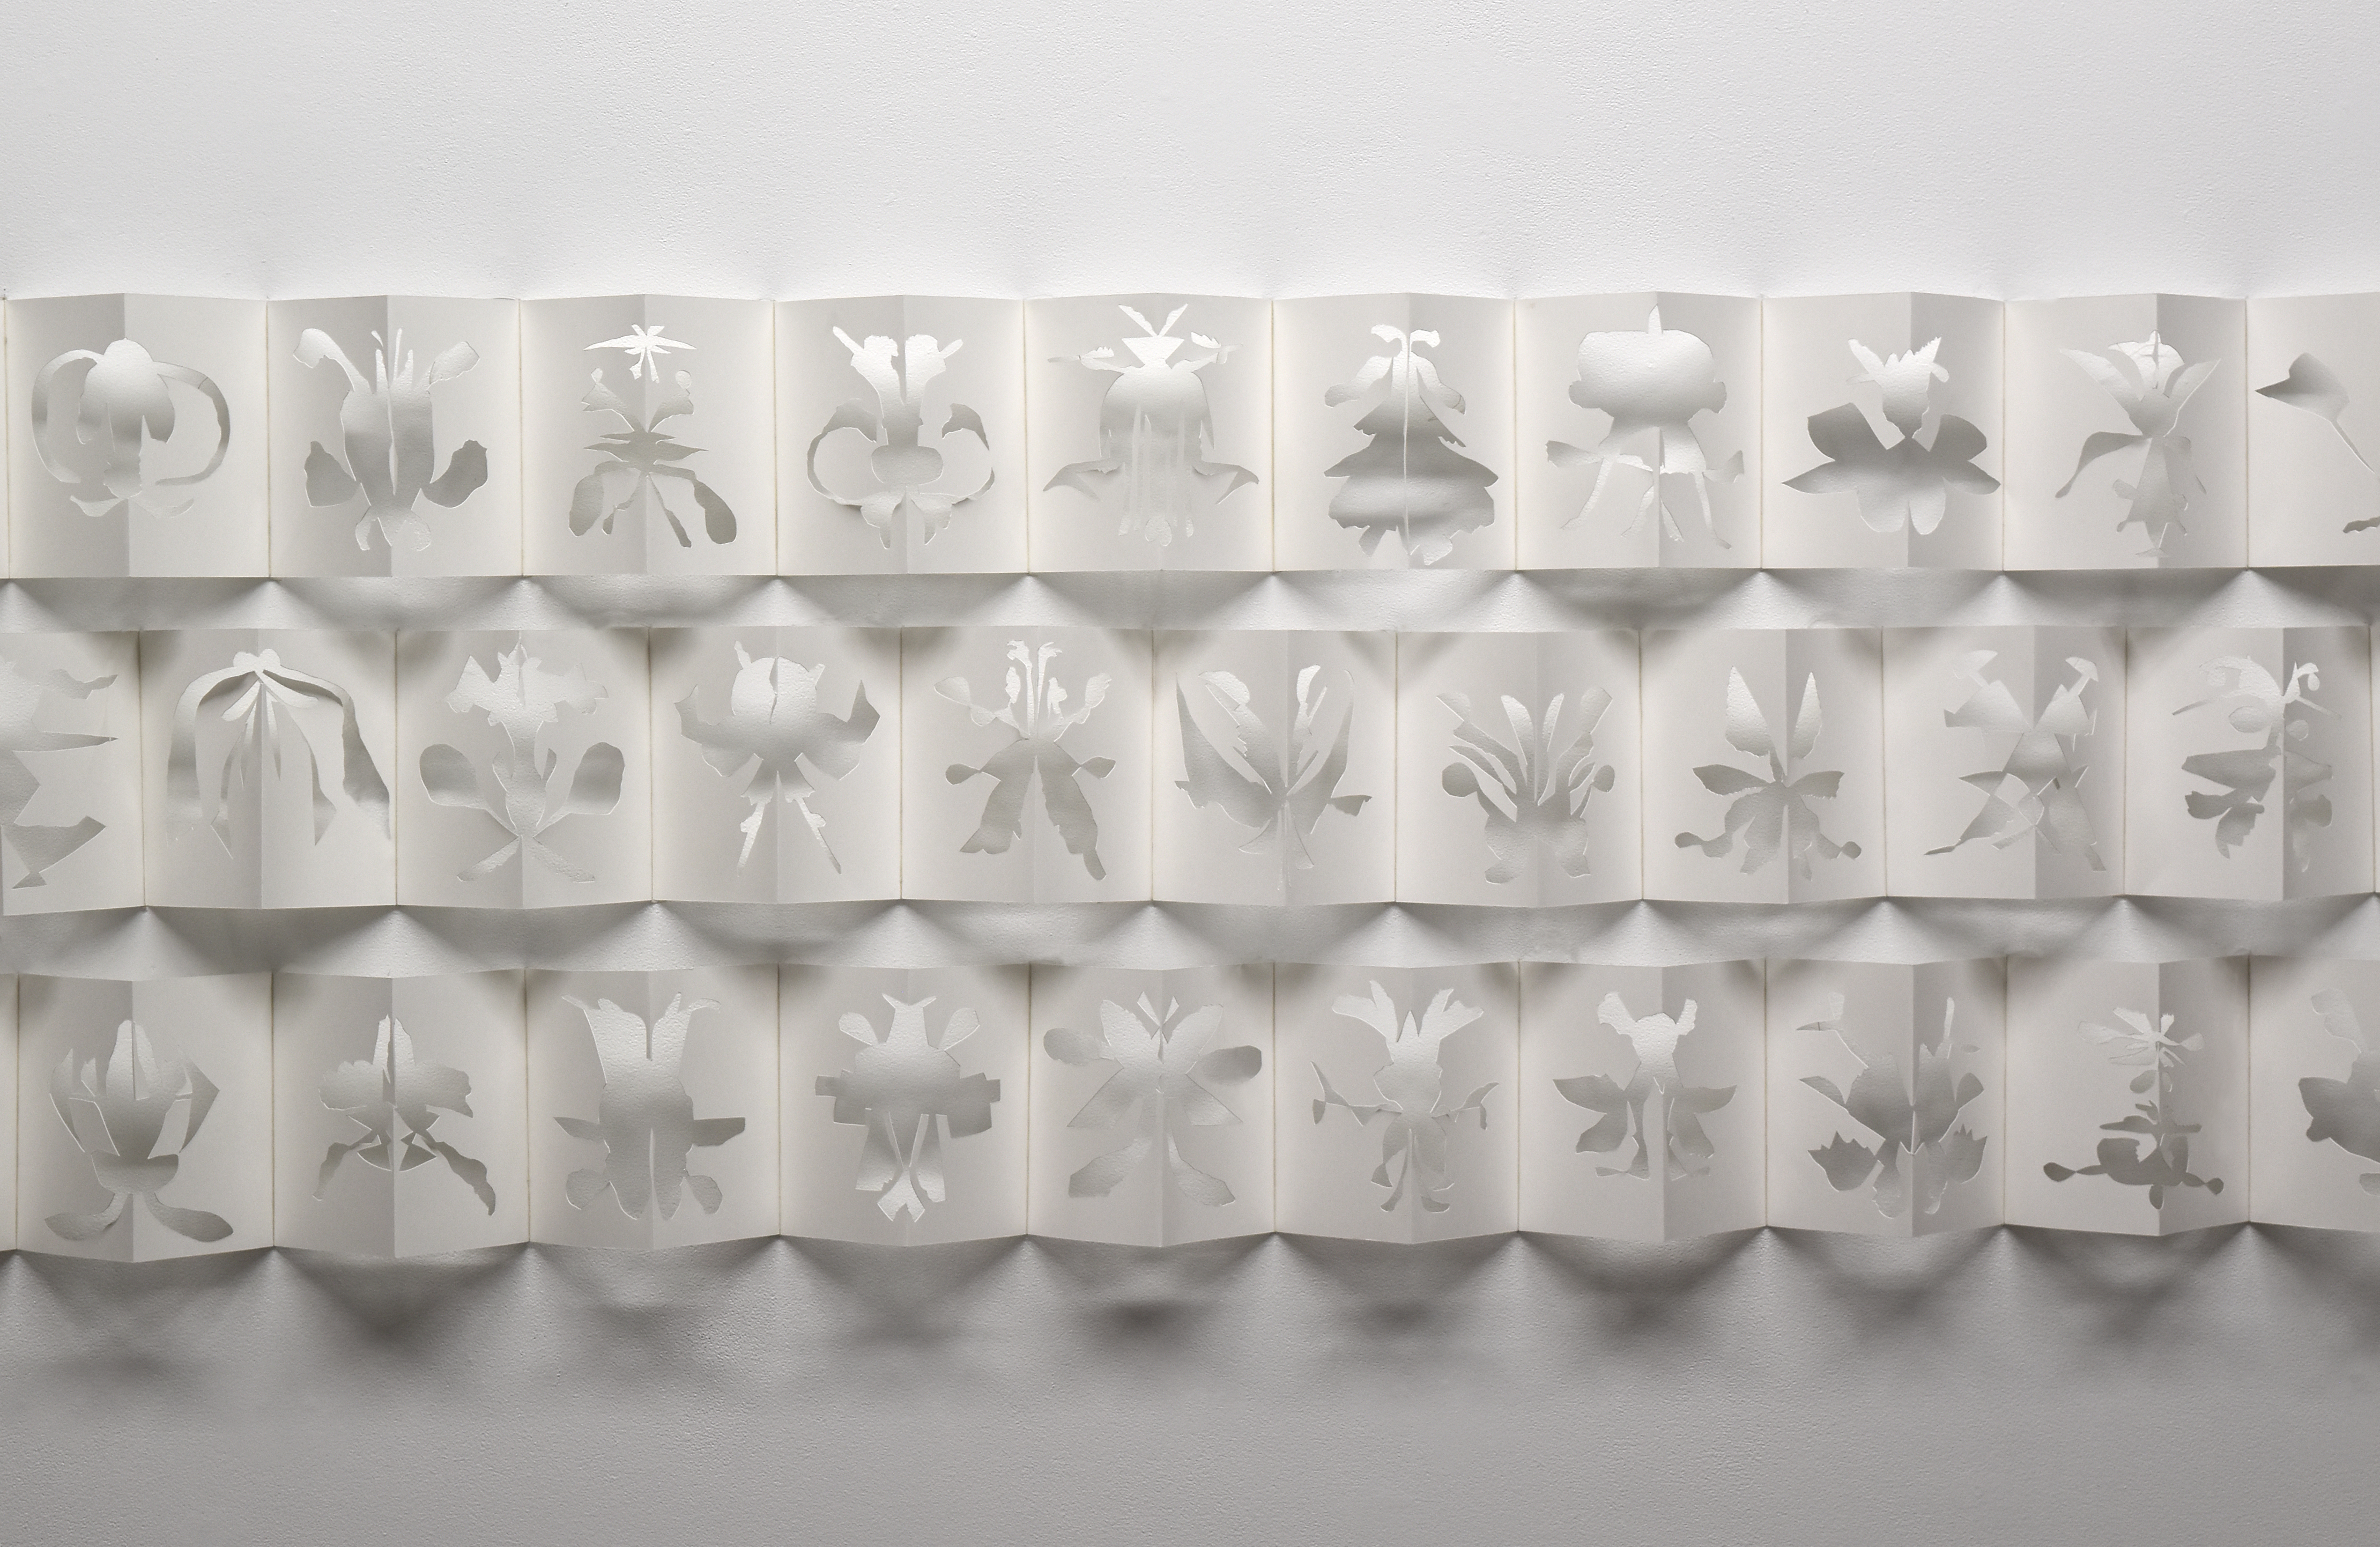 three rows of white, folded accordion-book pages hover on a gallery wall. The pages each have an abstract shape cut out of the centrefold, to create subtle patterns and shadows on the wall.